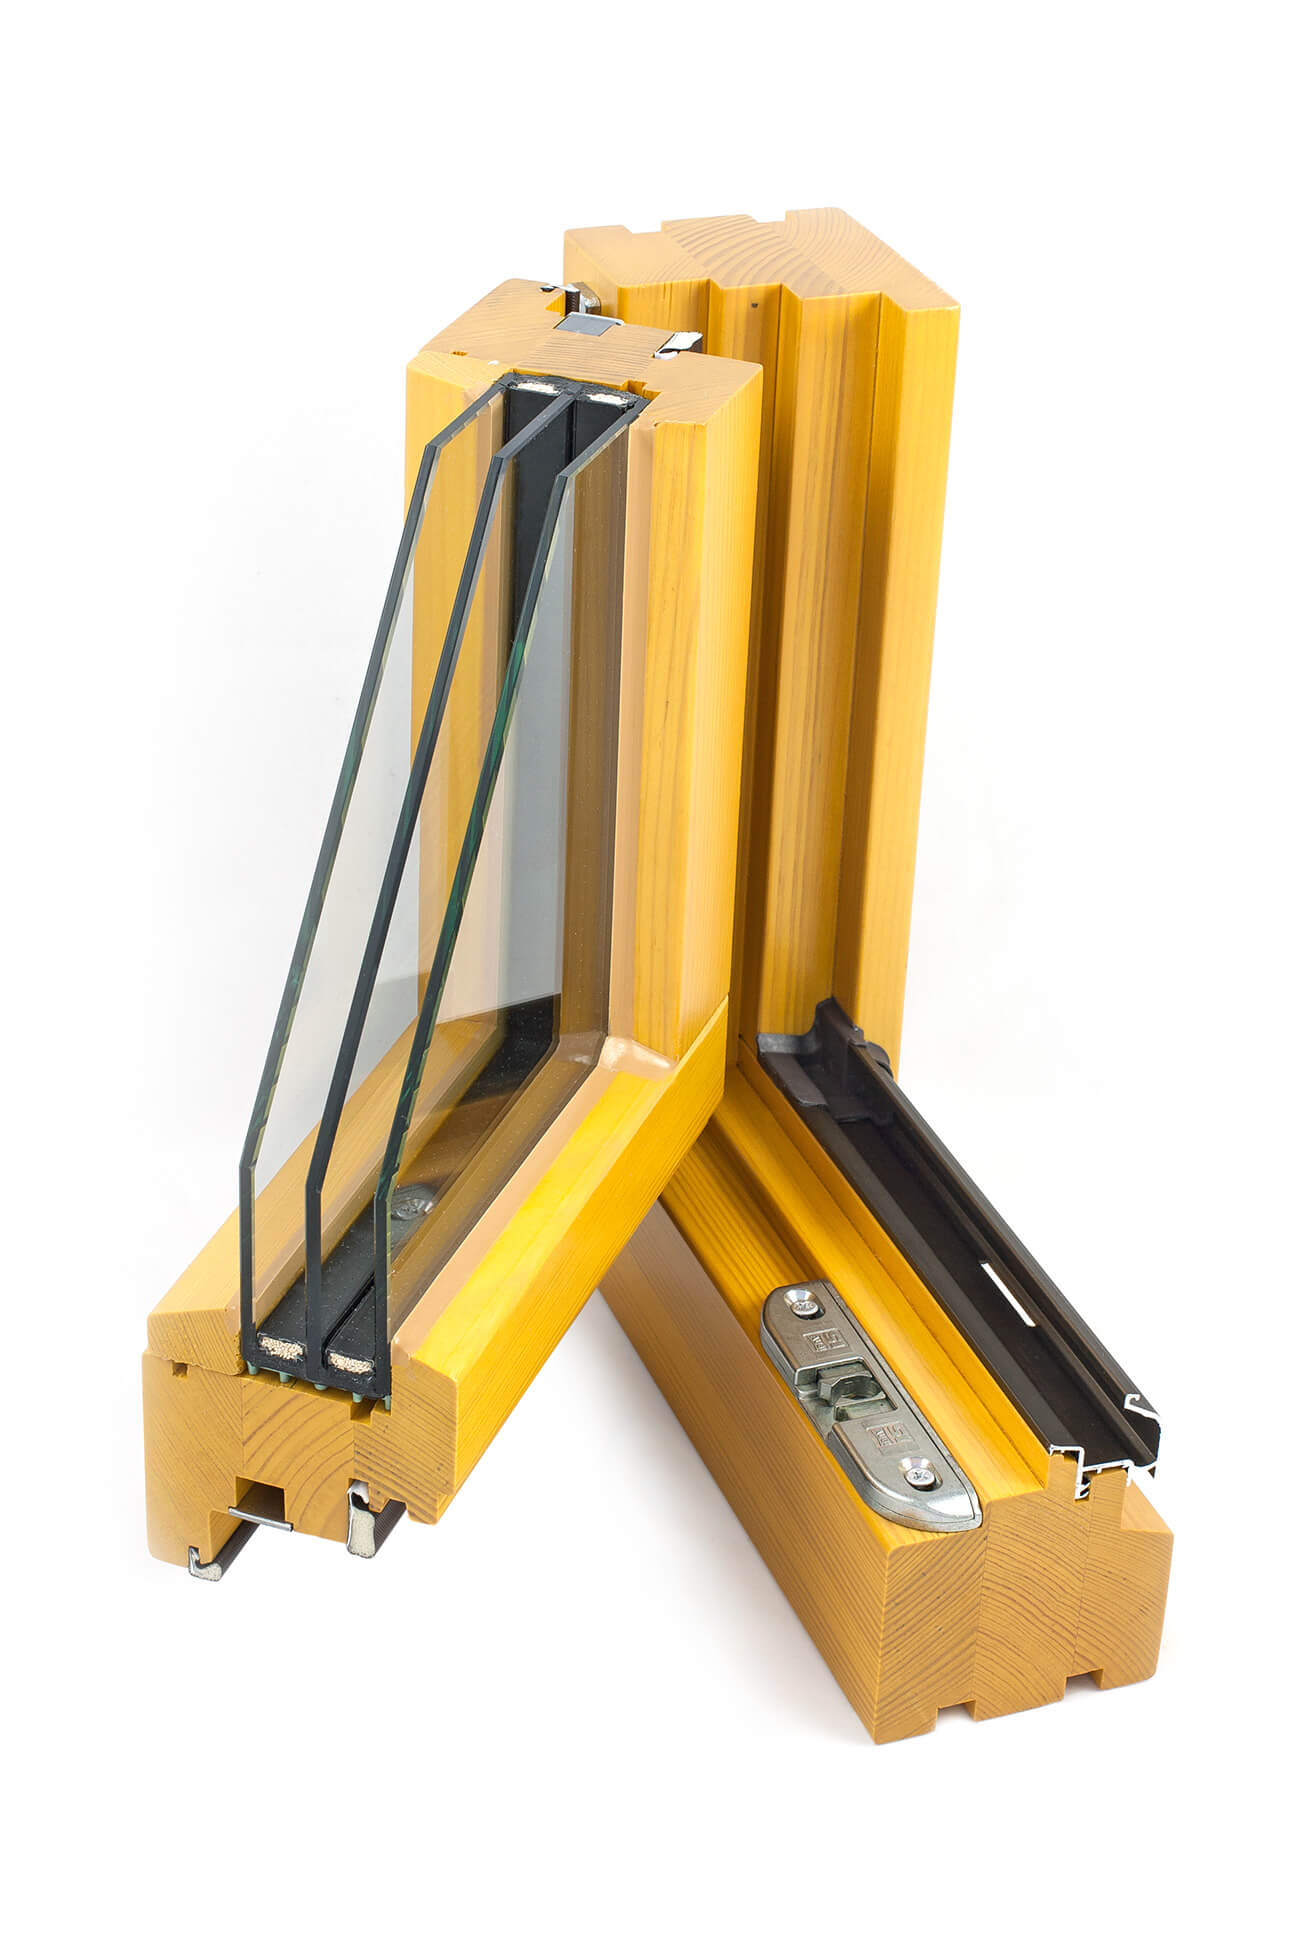 IW Series Standard Wooden Window